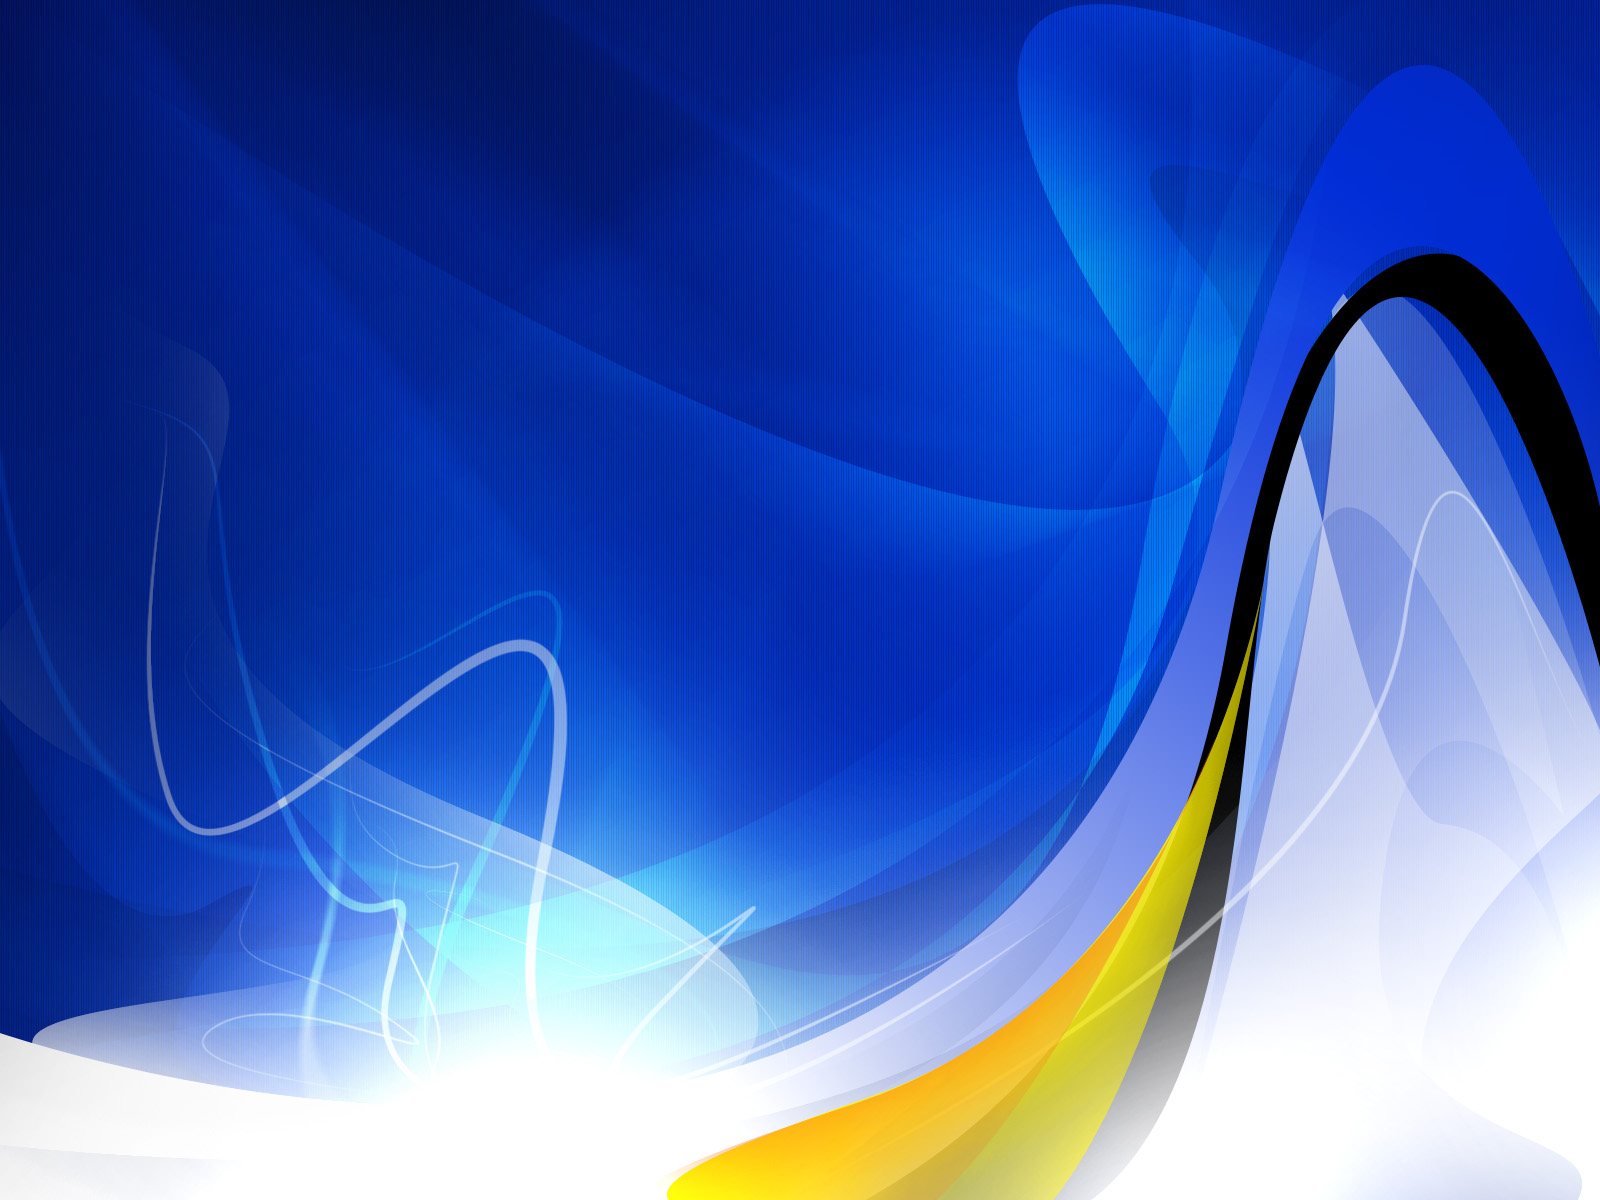 Nice Abstract Wallpaper Blue With Yellow White And Black Stripes